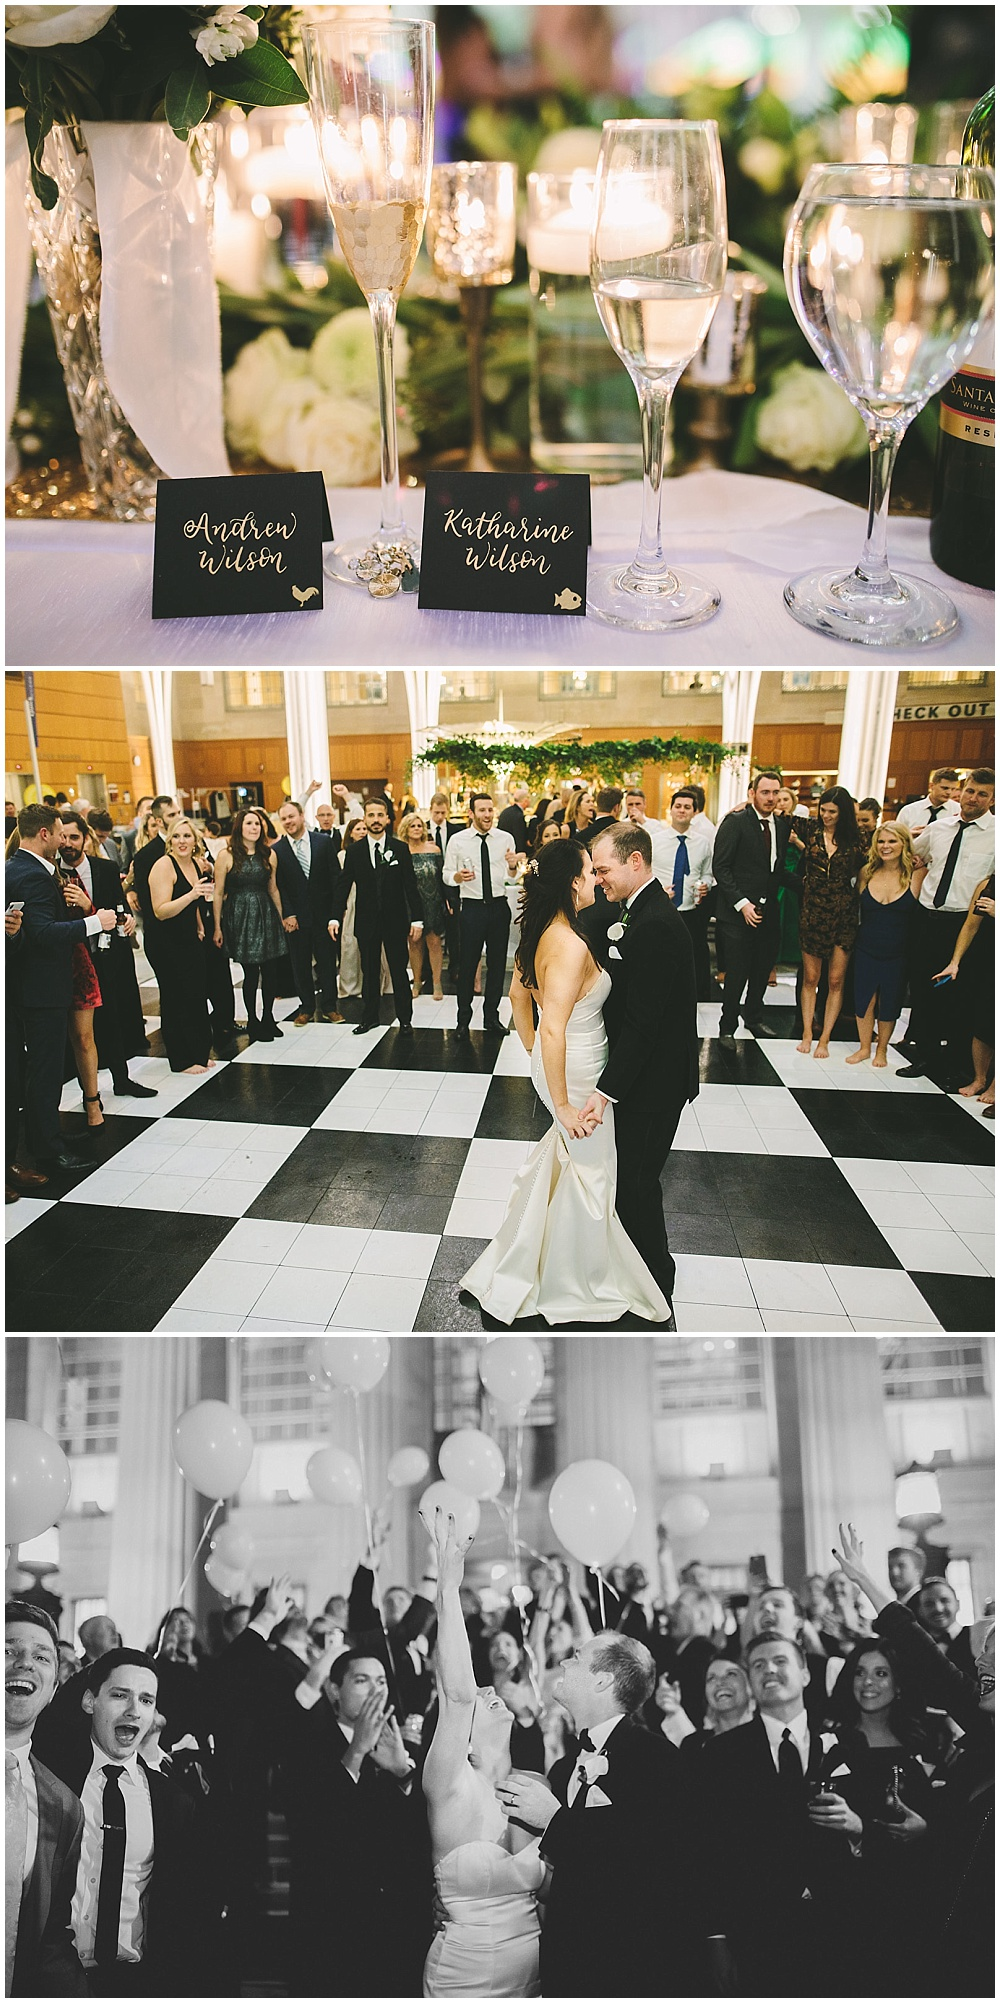 A timeless, modern wedding celebration at the Indianapolis Public Library. A black and white wedding with gold accents, a checkered dance floor and balloon exit at the end of the night. | Jessica Dum Wedding Coordination